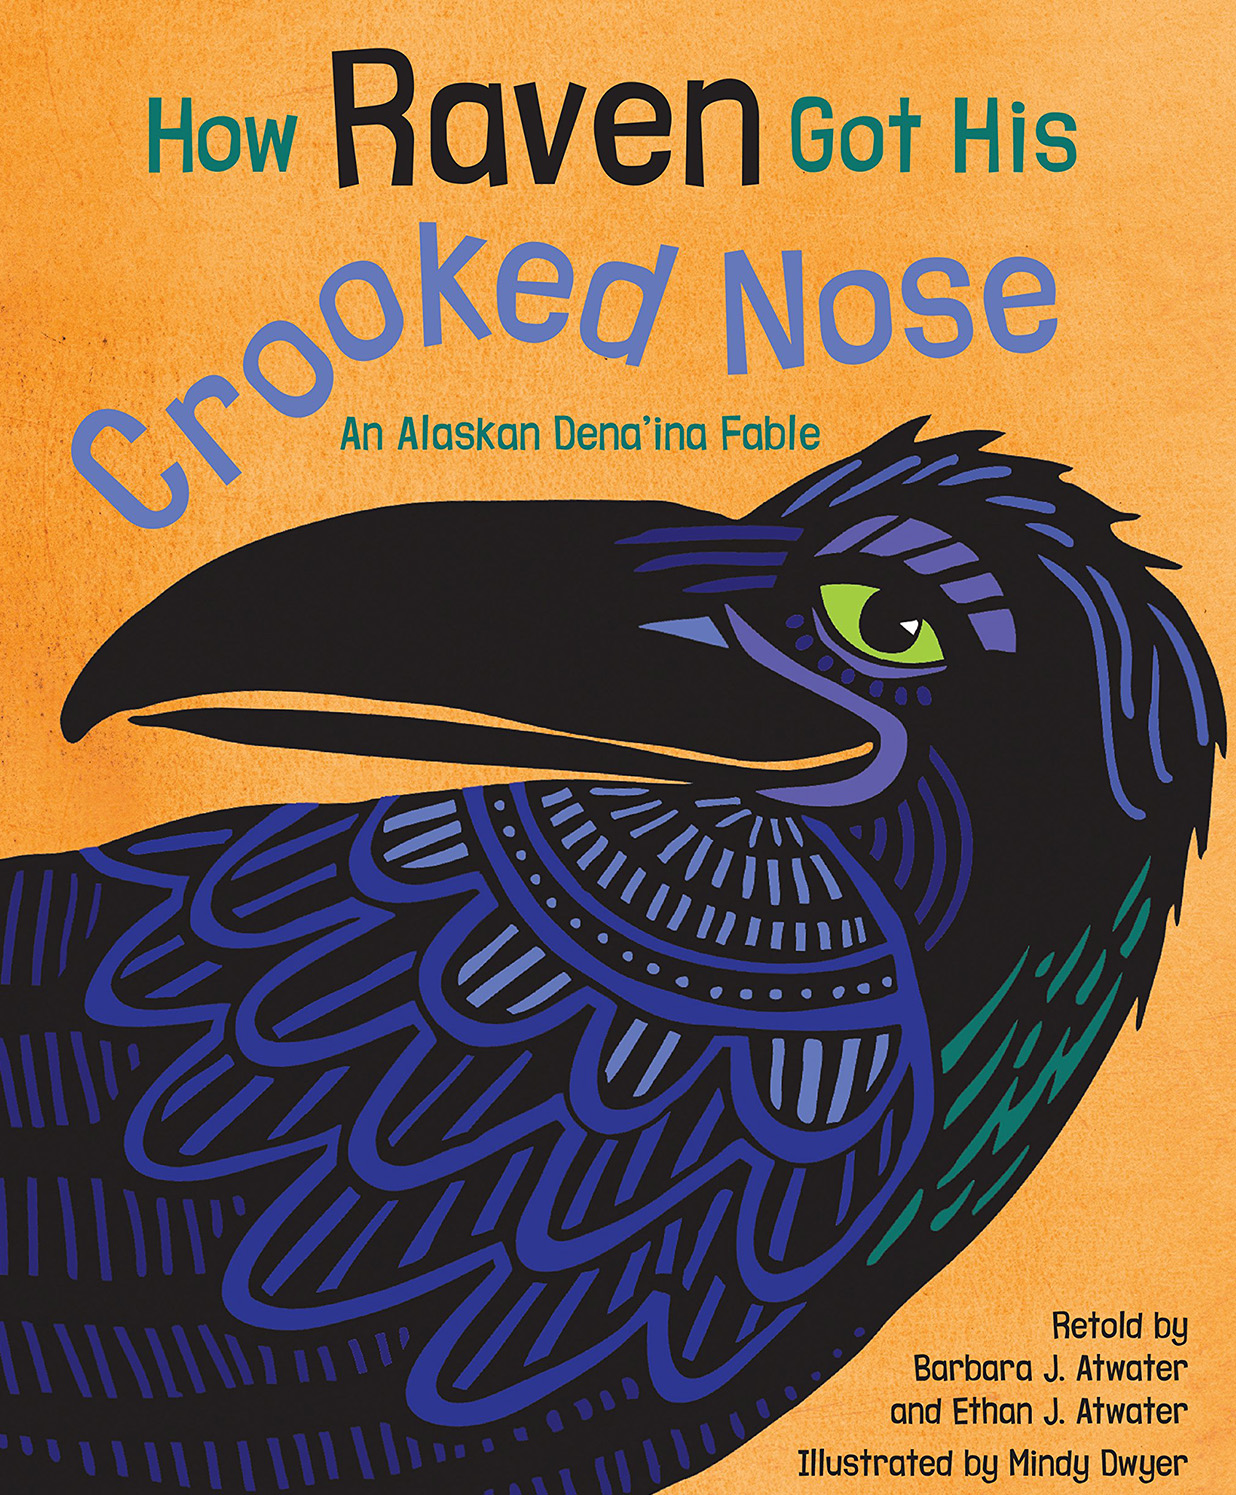 How Raven Got His Crooked Nose by Barbara J. Atwater